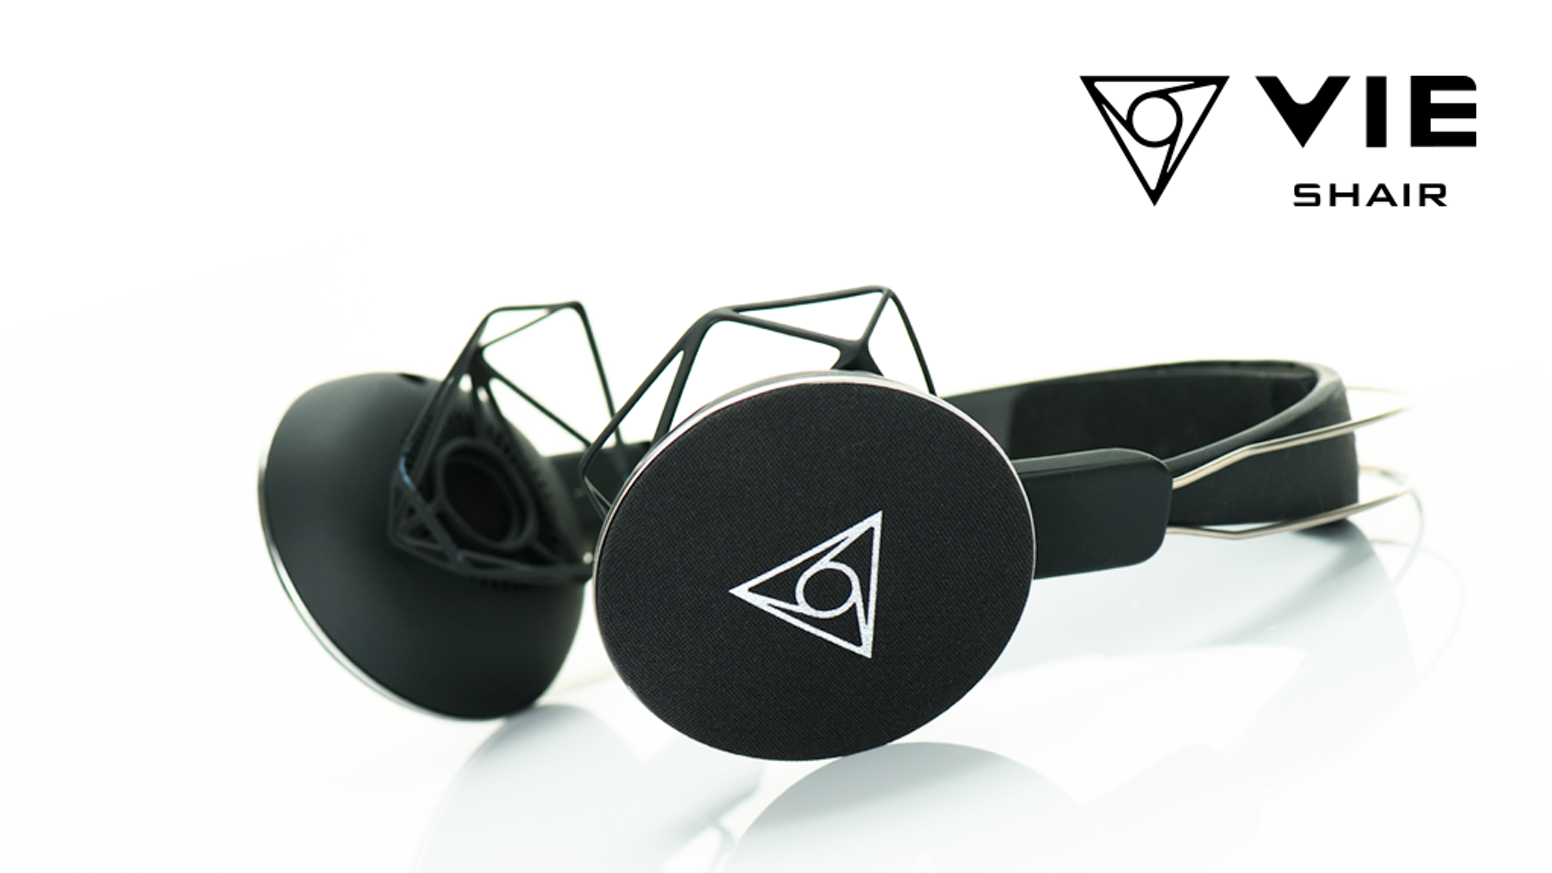 VIE SHAIR: Pain-Free Sociable Headphones by Vie Style Inc  » Please